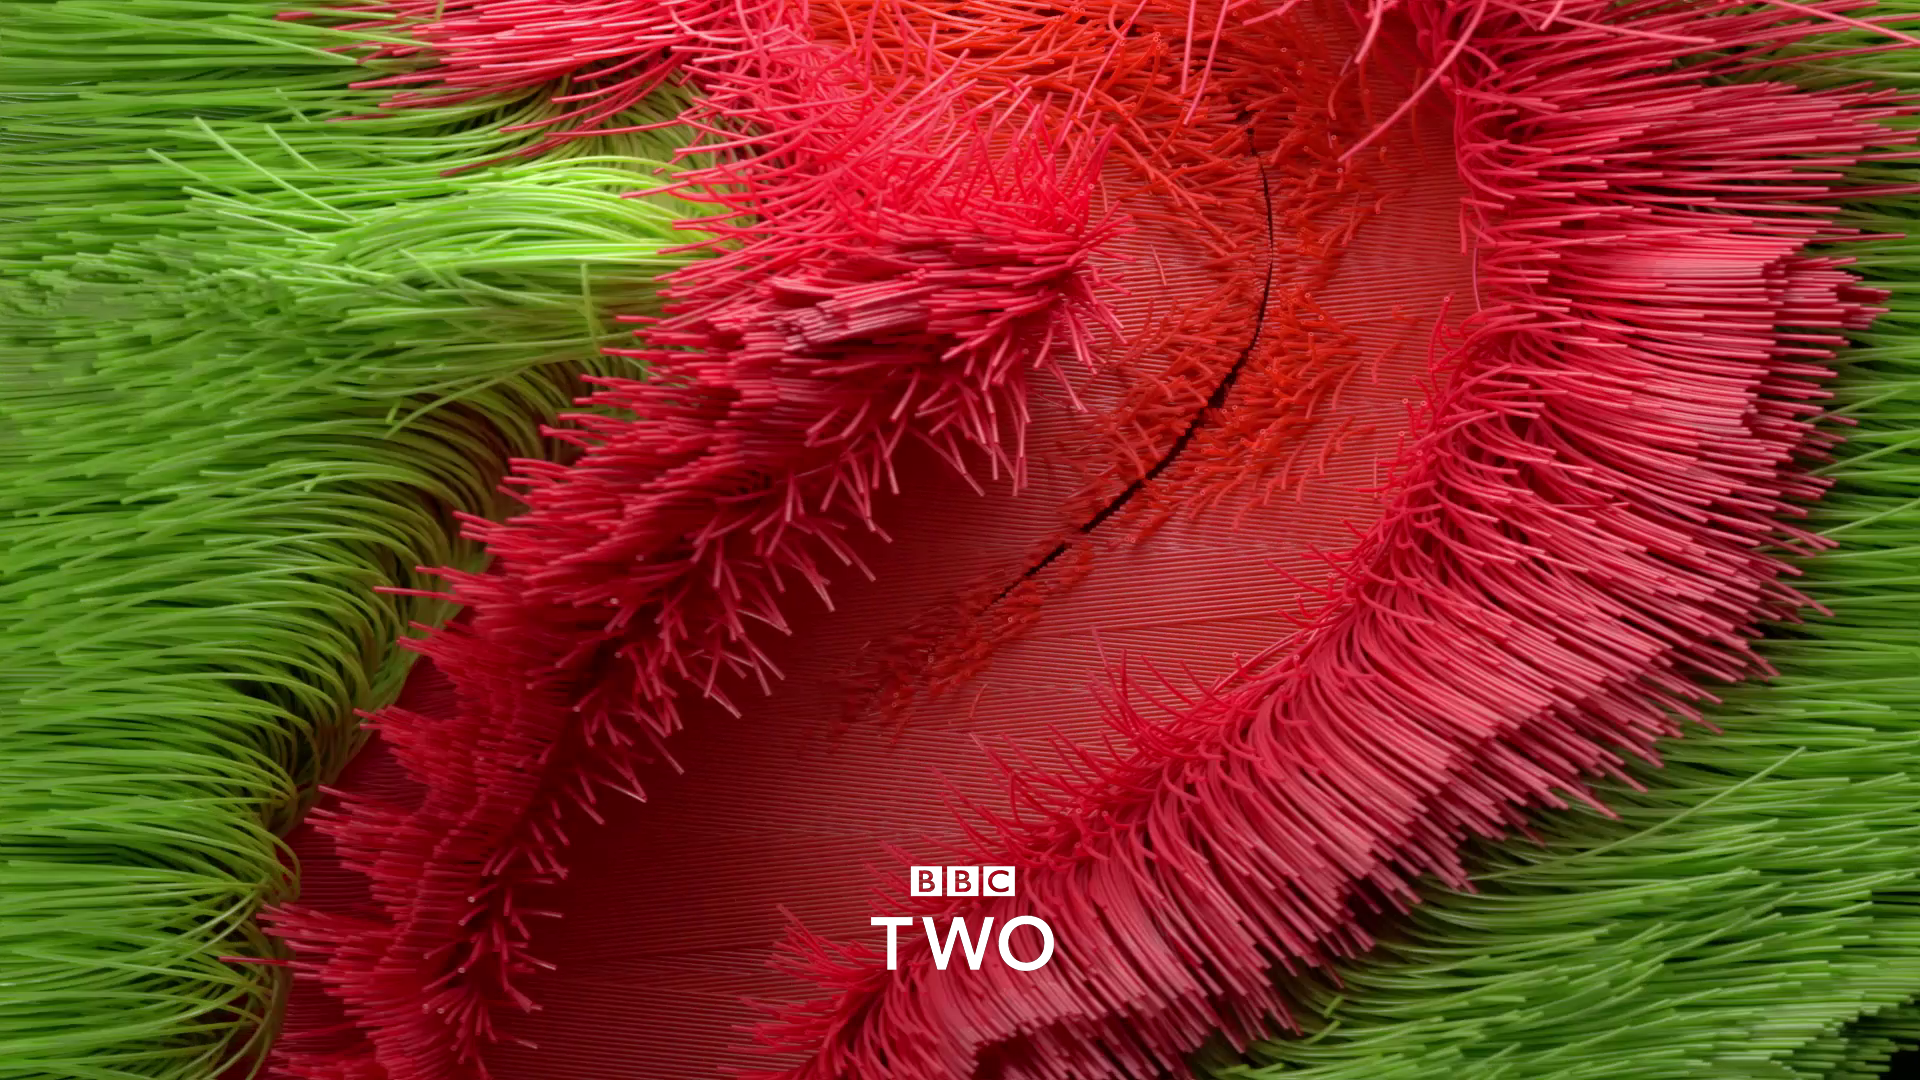 BBC2 01.png